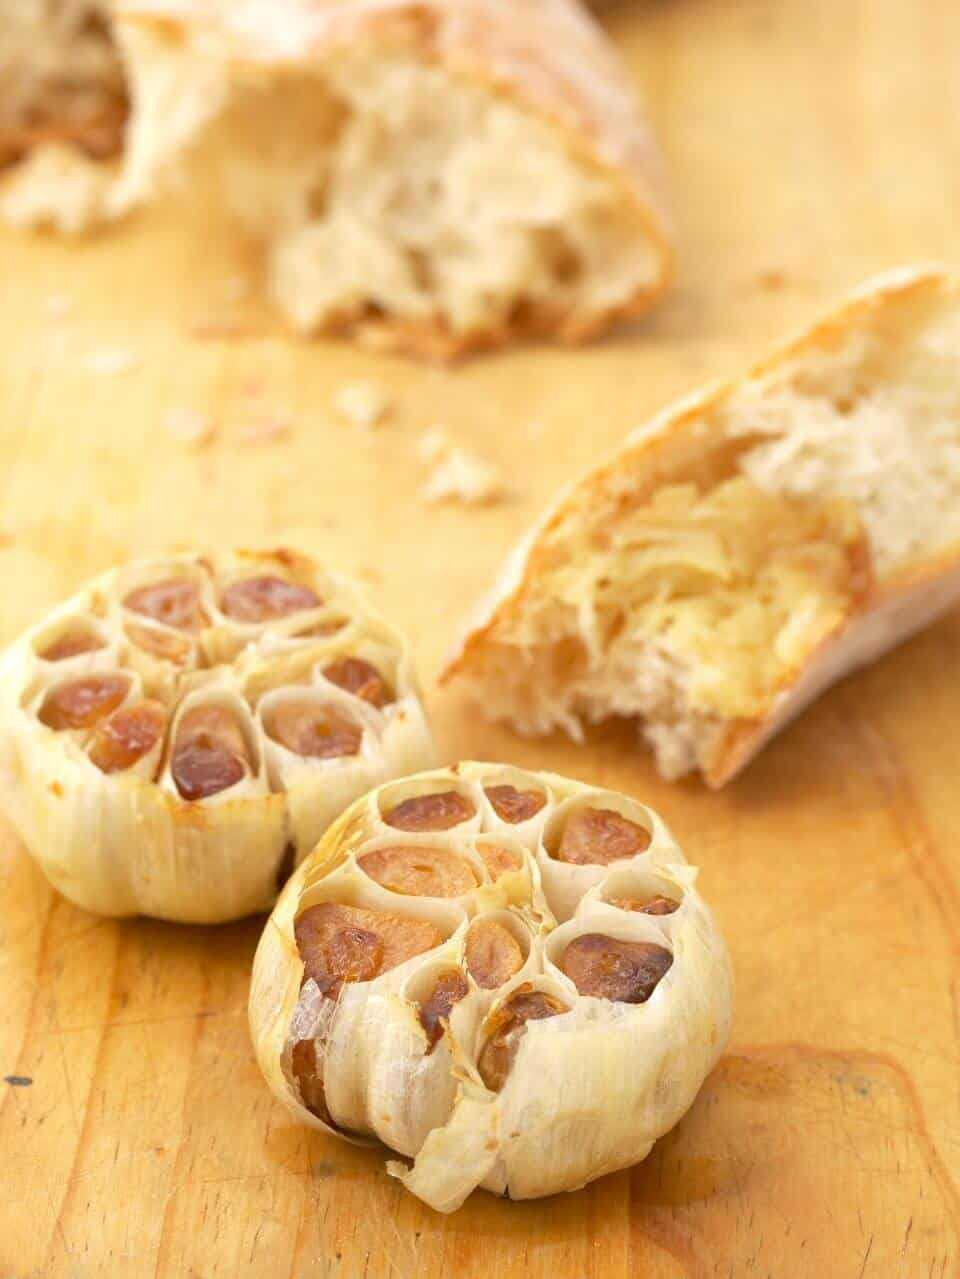 ROASTED GARLIC RECIPE – HOW TO ROAST GARLIC (WITH VIDEO INSTRUCTIONS)